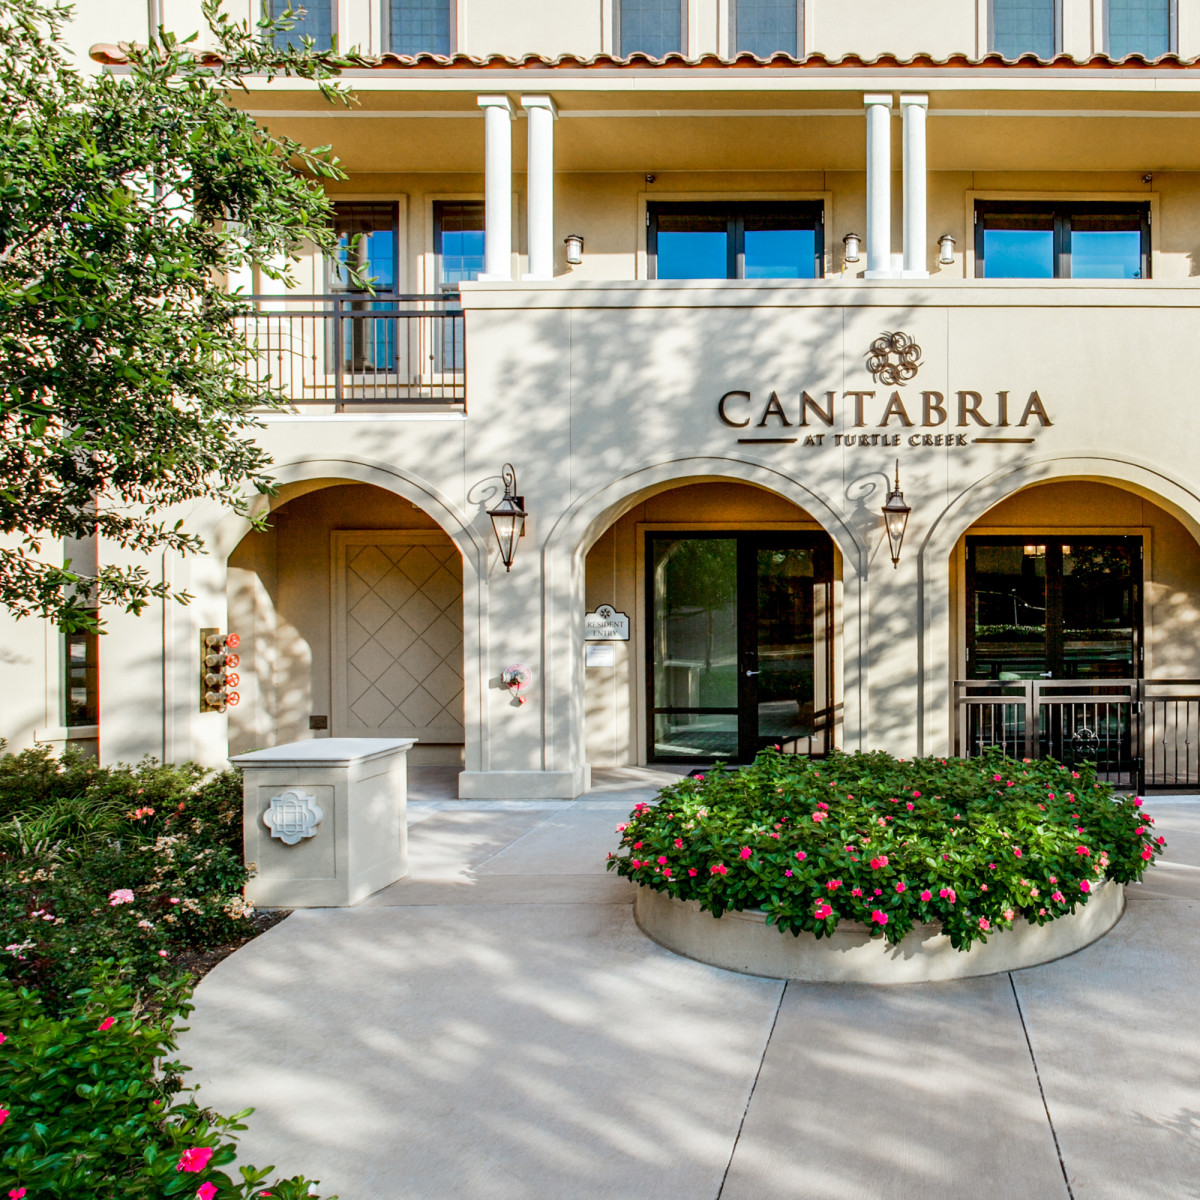 Cantabria at Turtle Creek apartments